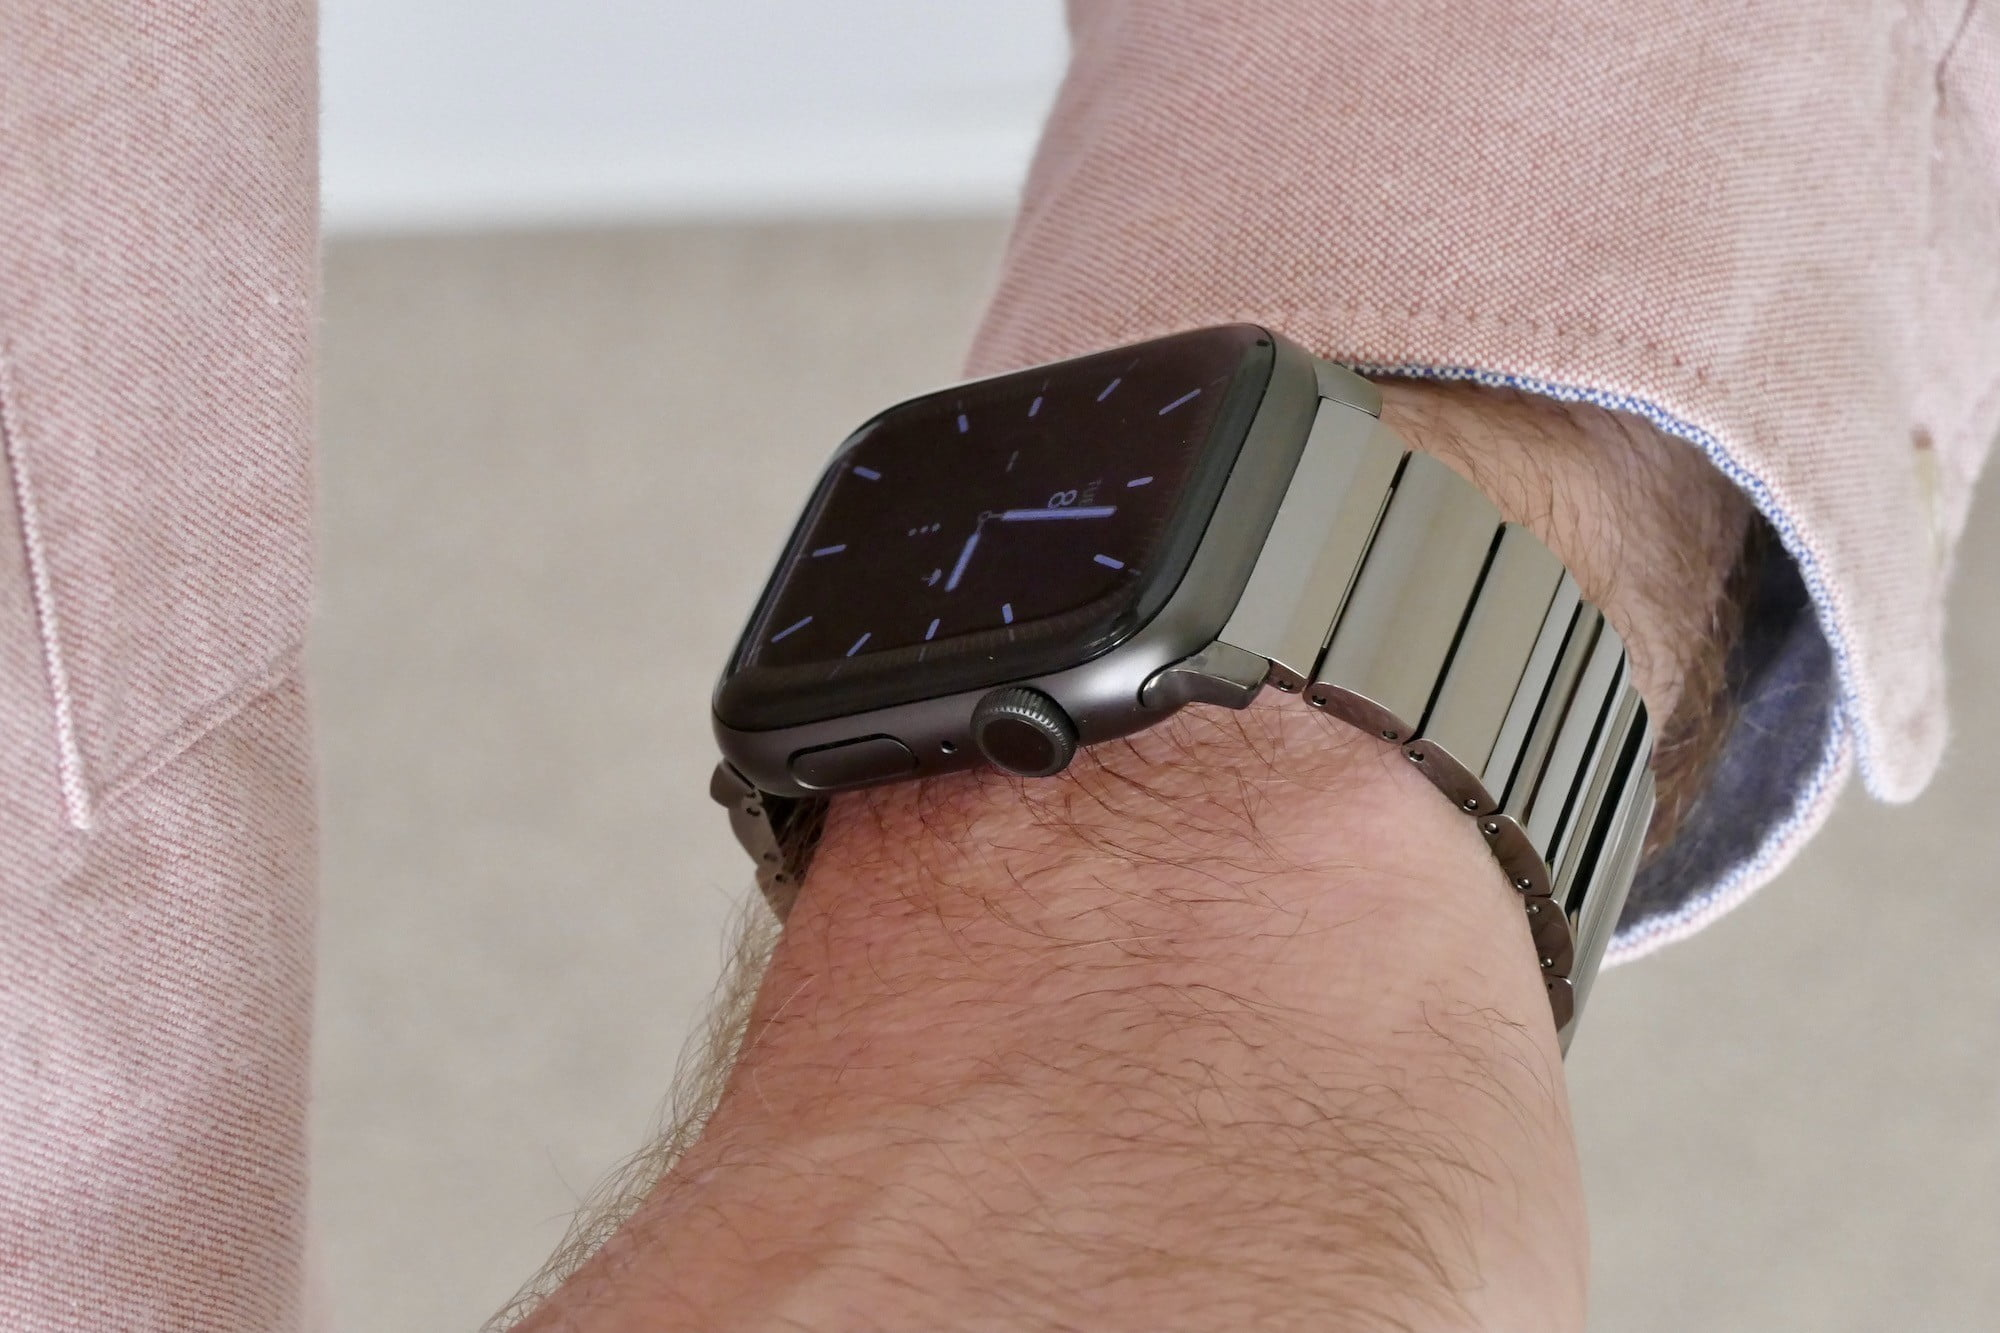 nomad titanium steel band apple watch hands on photos price release date space grey wrist